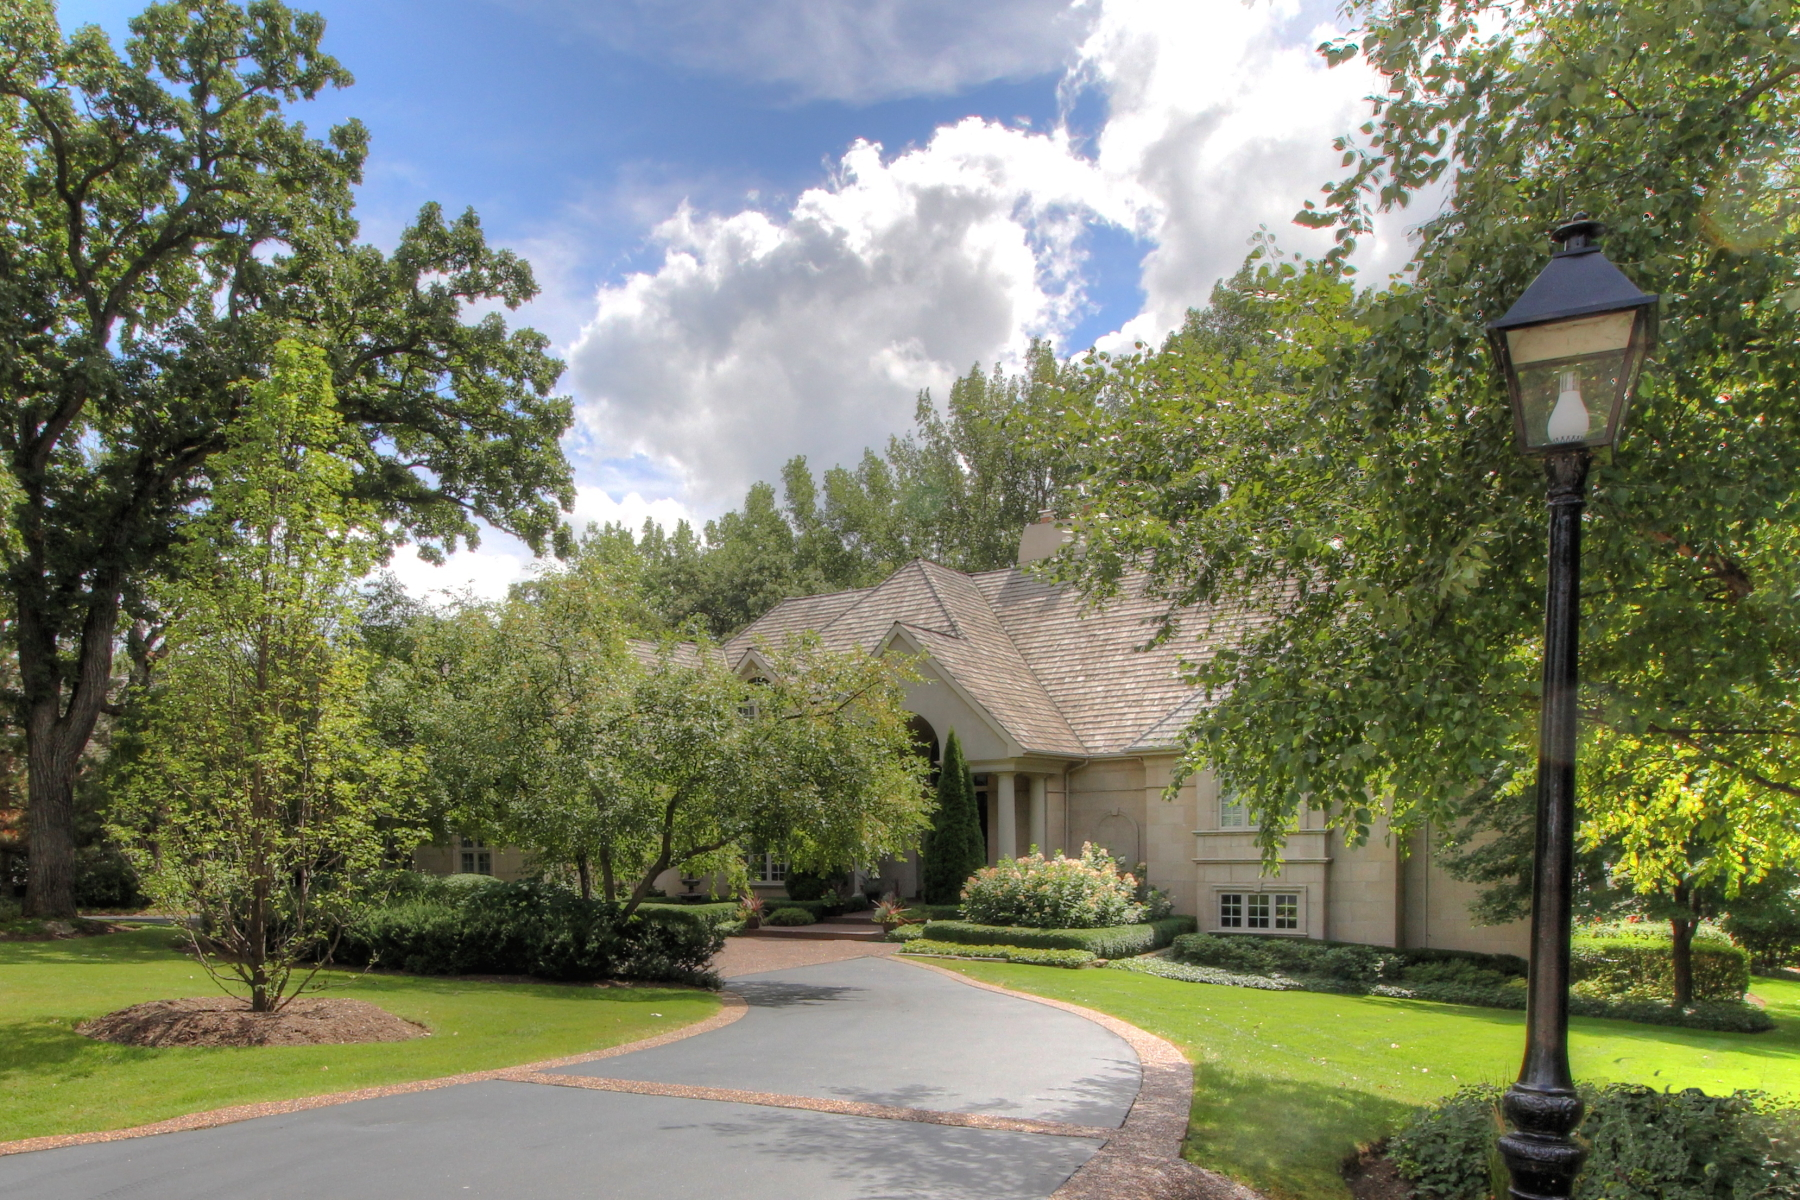 Single Family Home for Sale at Private Cul-de-sac Home 162 North Wynstone Drive North Barrington, 60010 United States